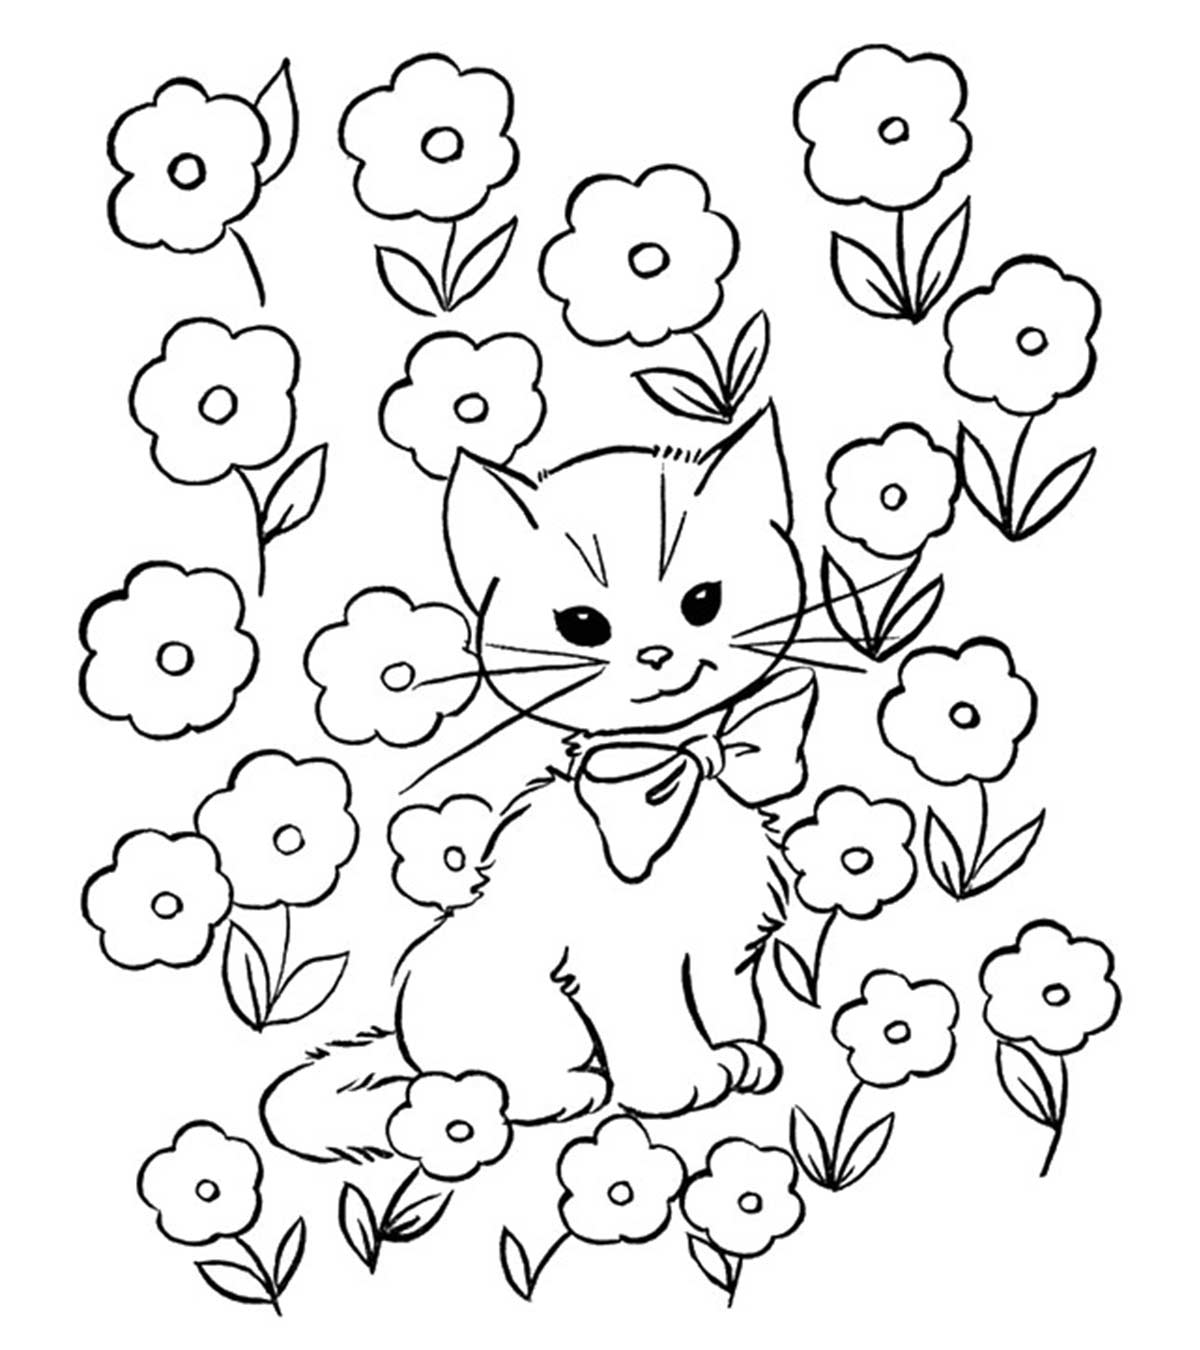 cat to color cat coloring pages for adults best coloring pages for kids color cat to